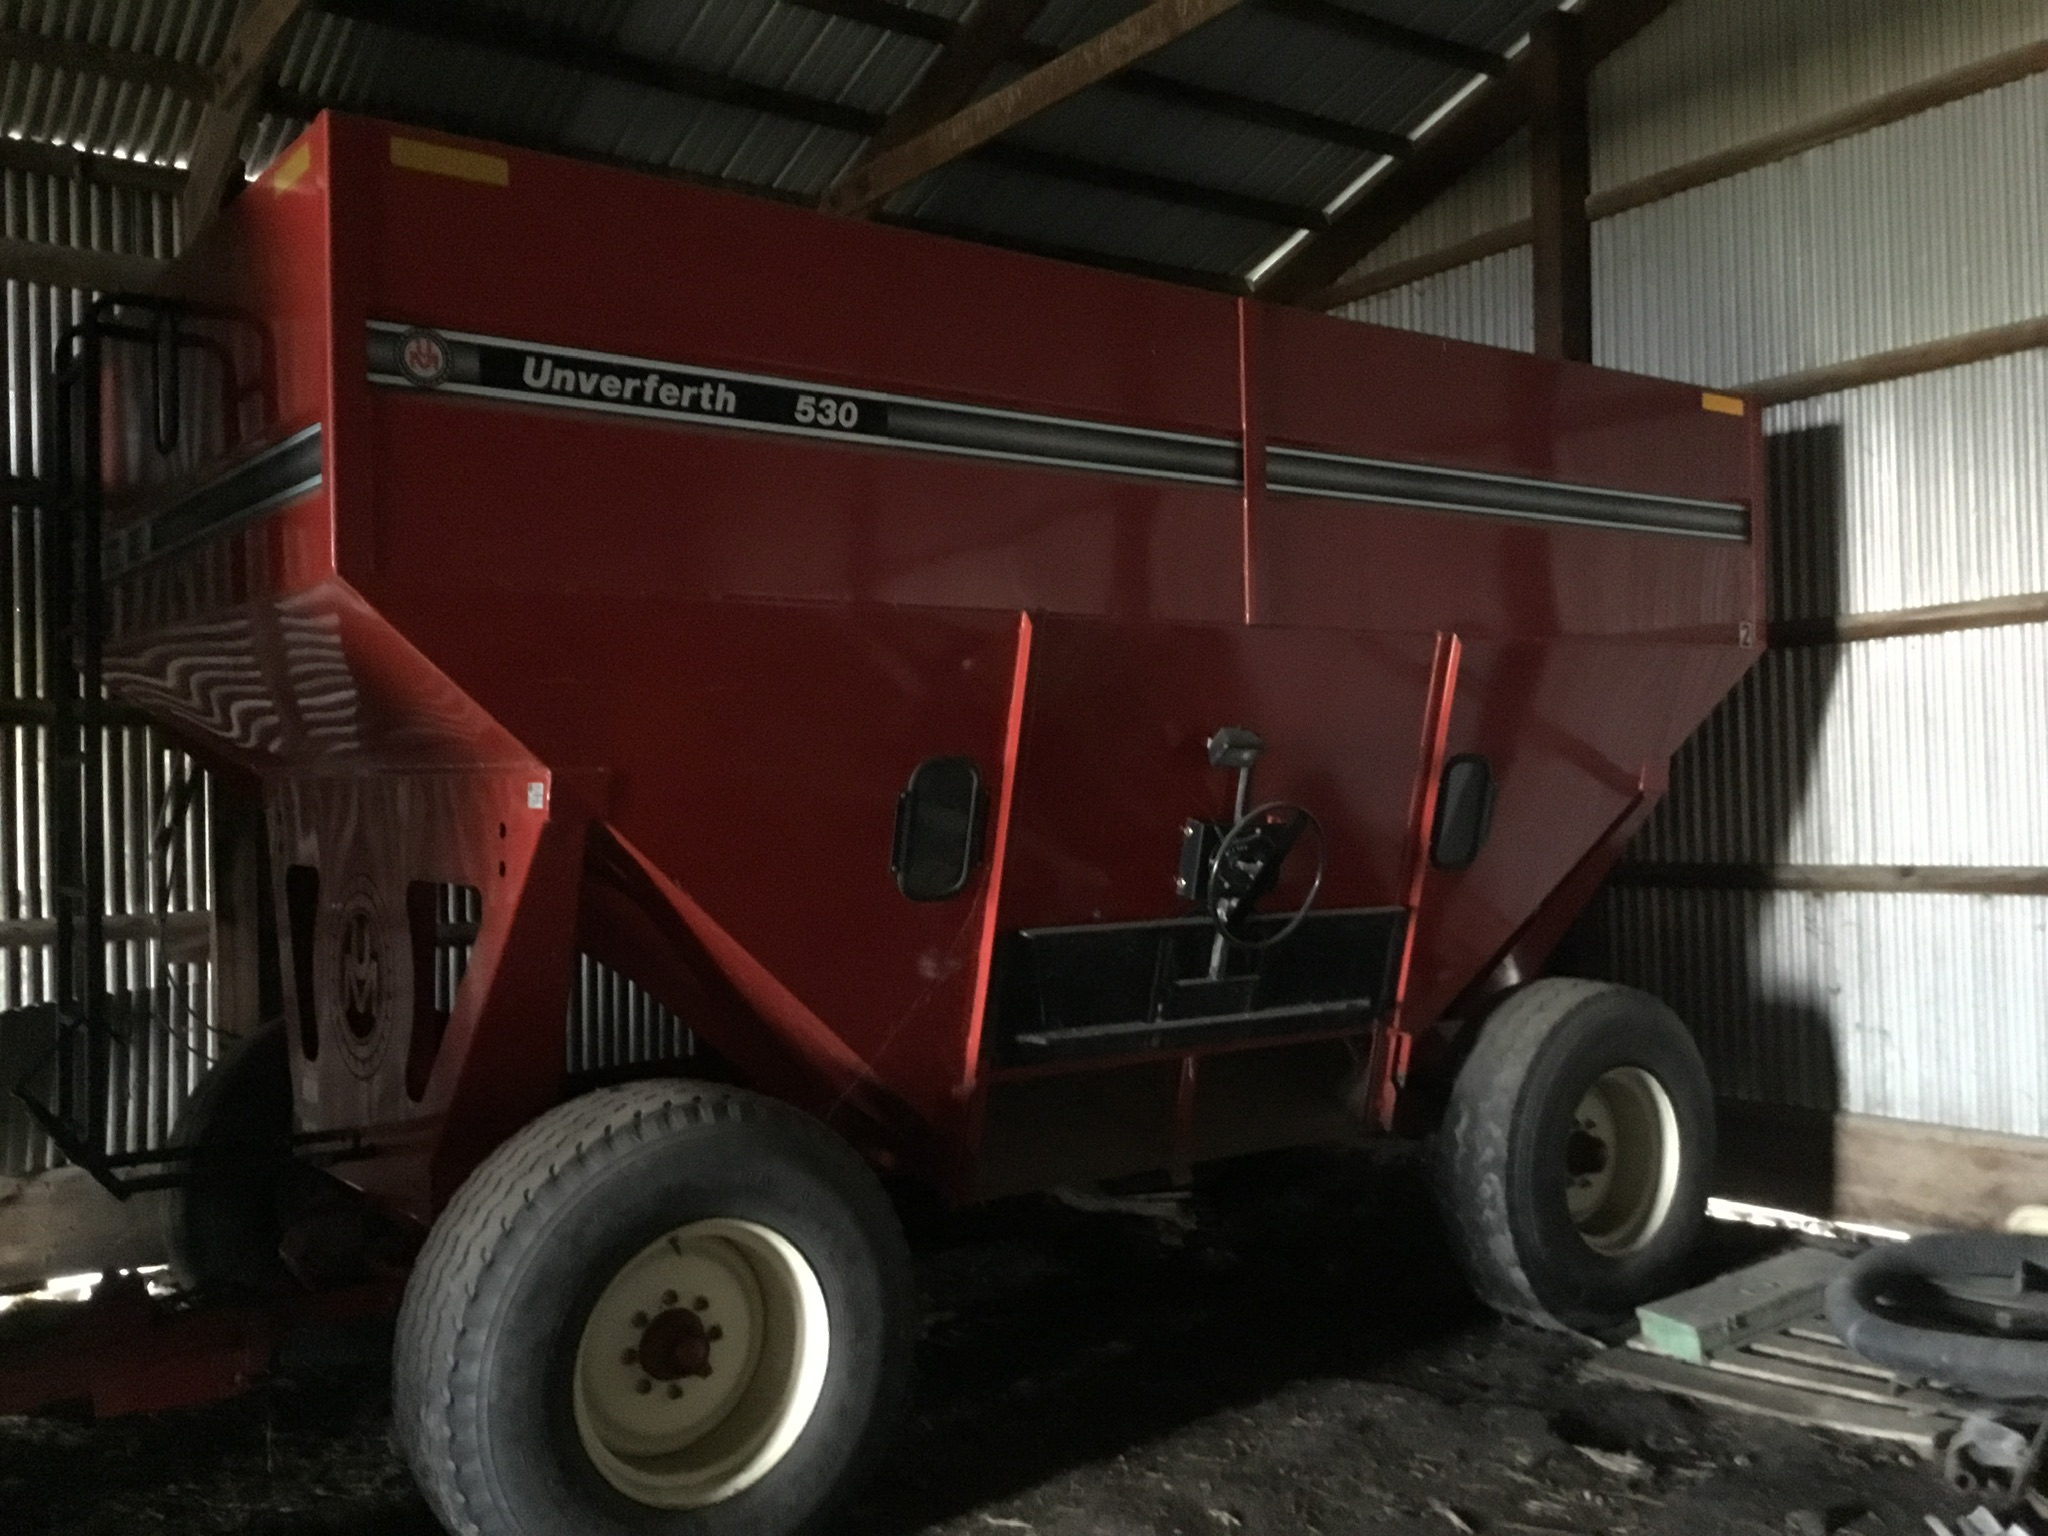 Unverferth 530 Side Dump Wagon, Brakes, 425-65R-22.5 Tires, Serial #B206-50-119, Red, Sharp - Image 4 of 6